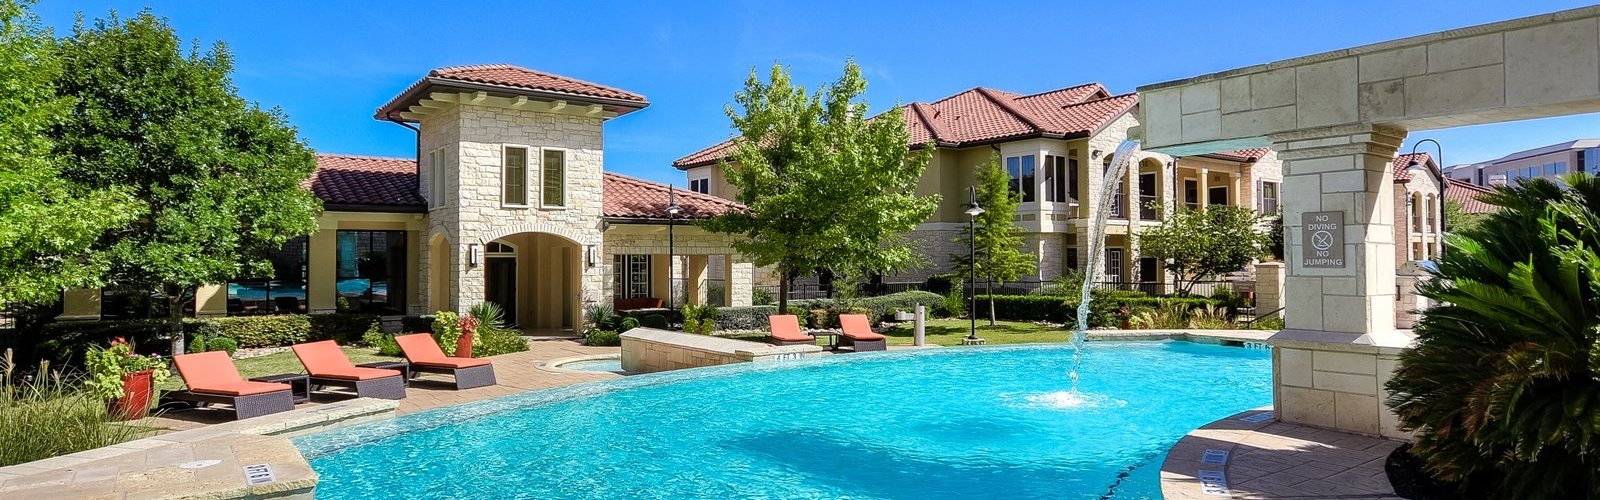 Austin Apartments For Rent 3500 Westlake Amenities